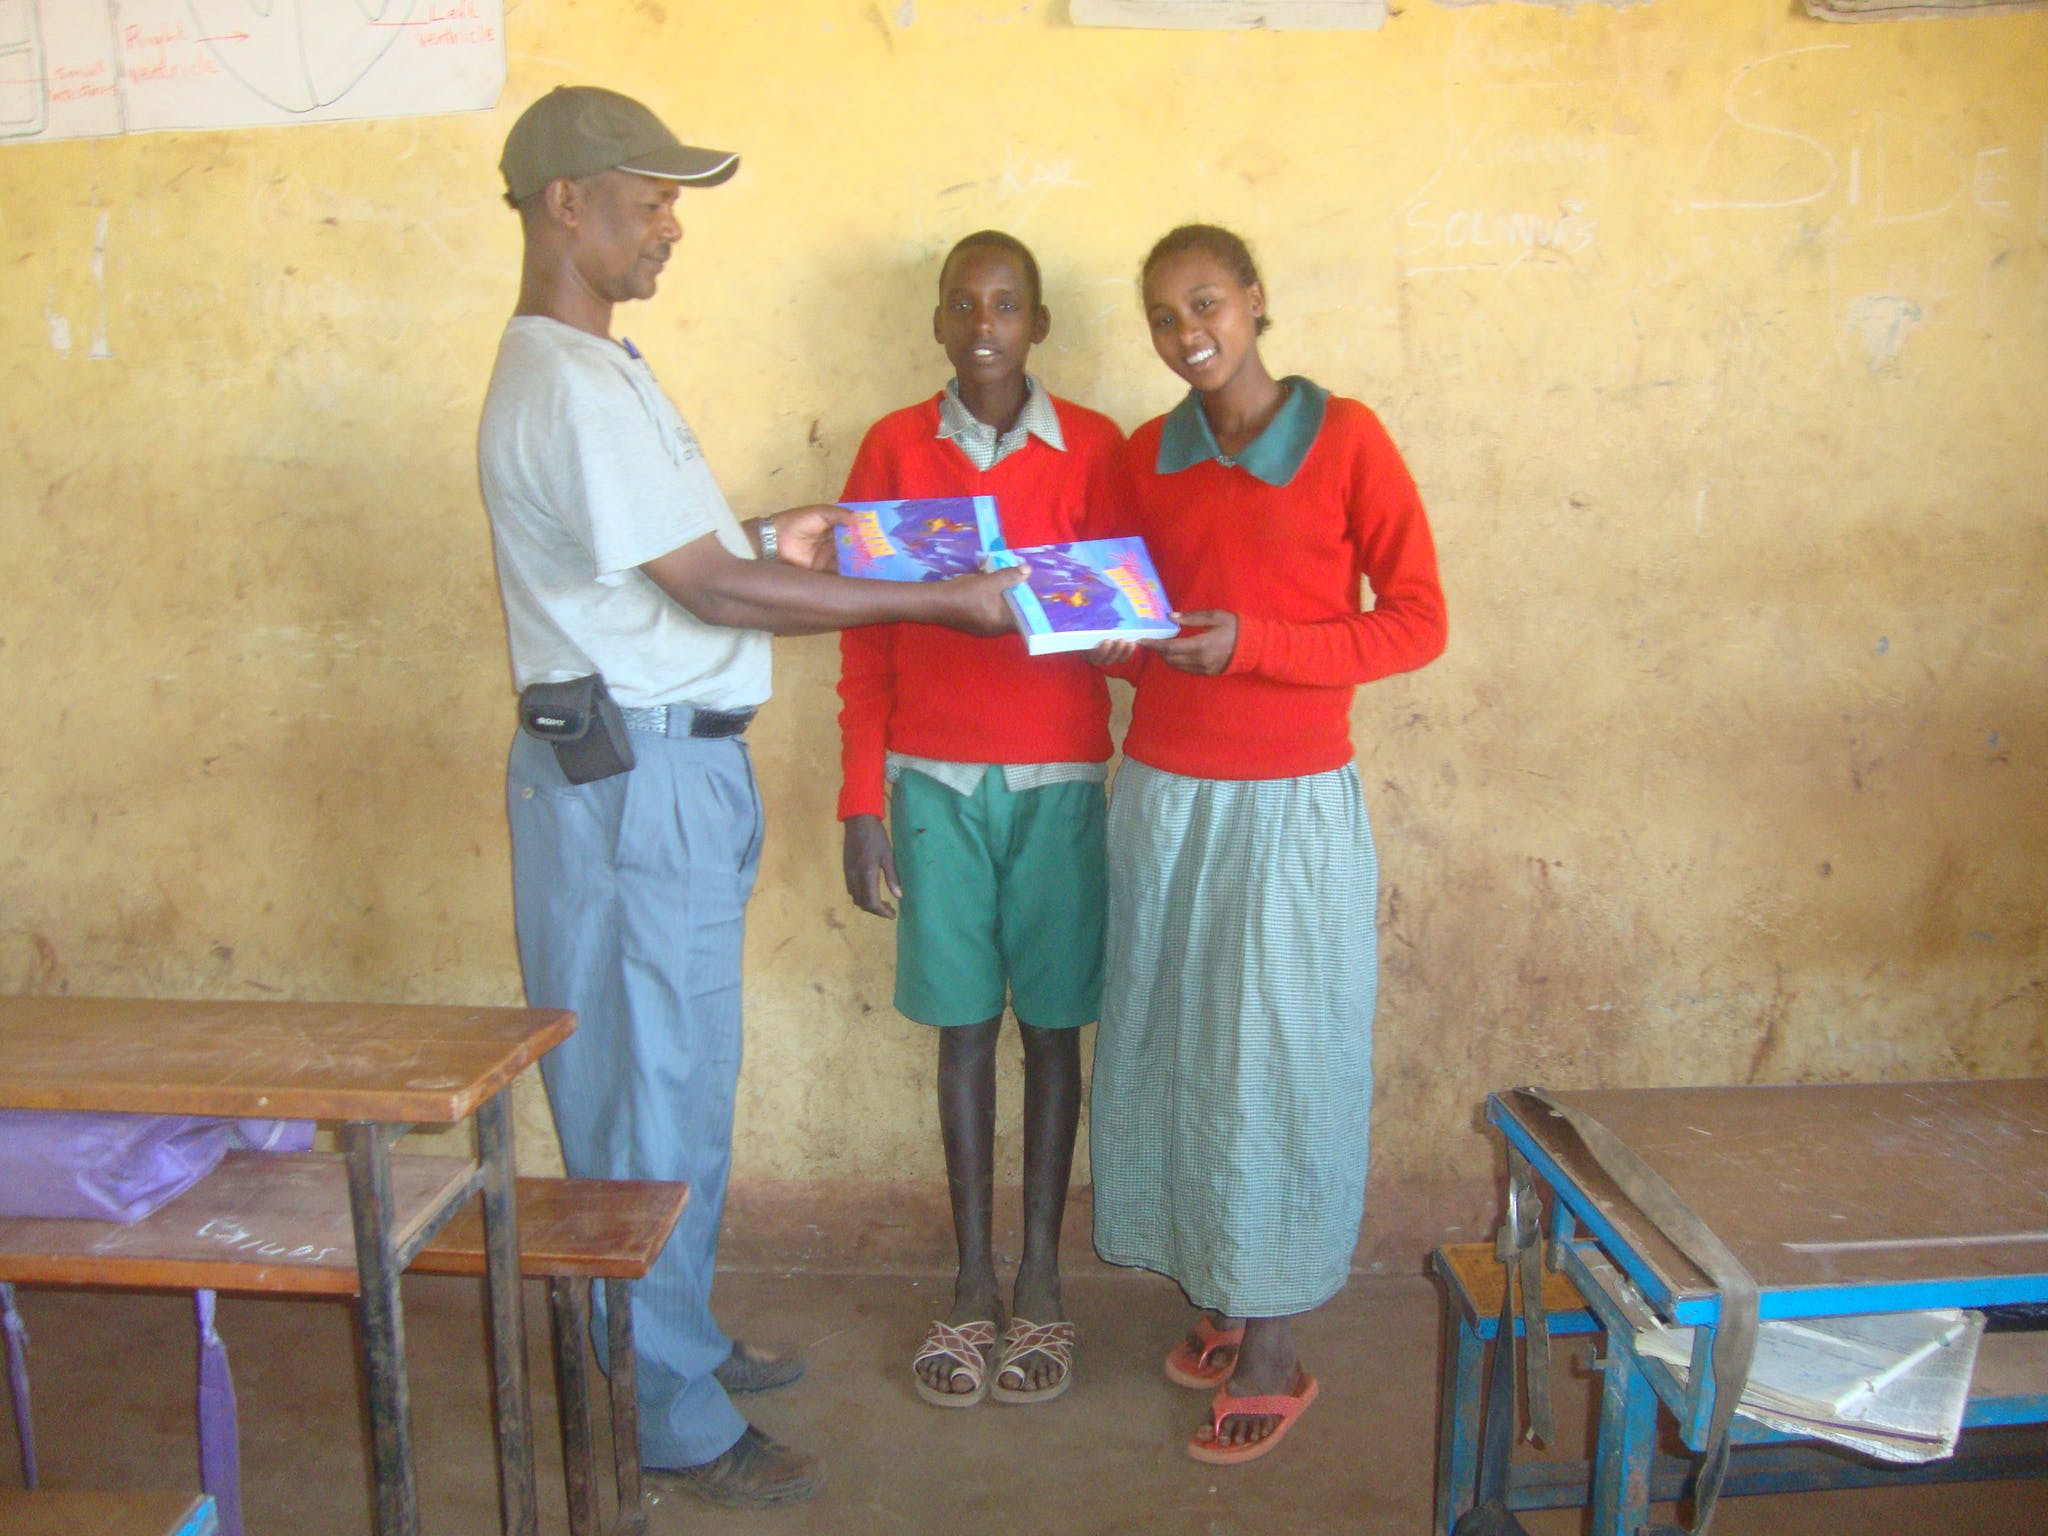 FH Staffer Wario, Delivering Books to Lkisomai (center) and Sabadei